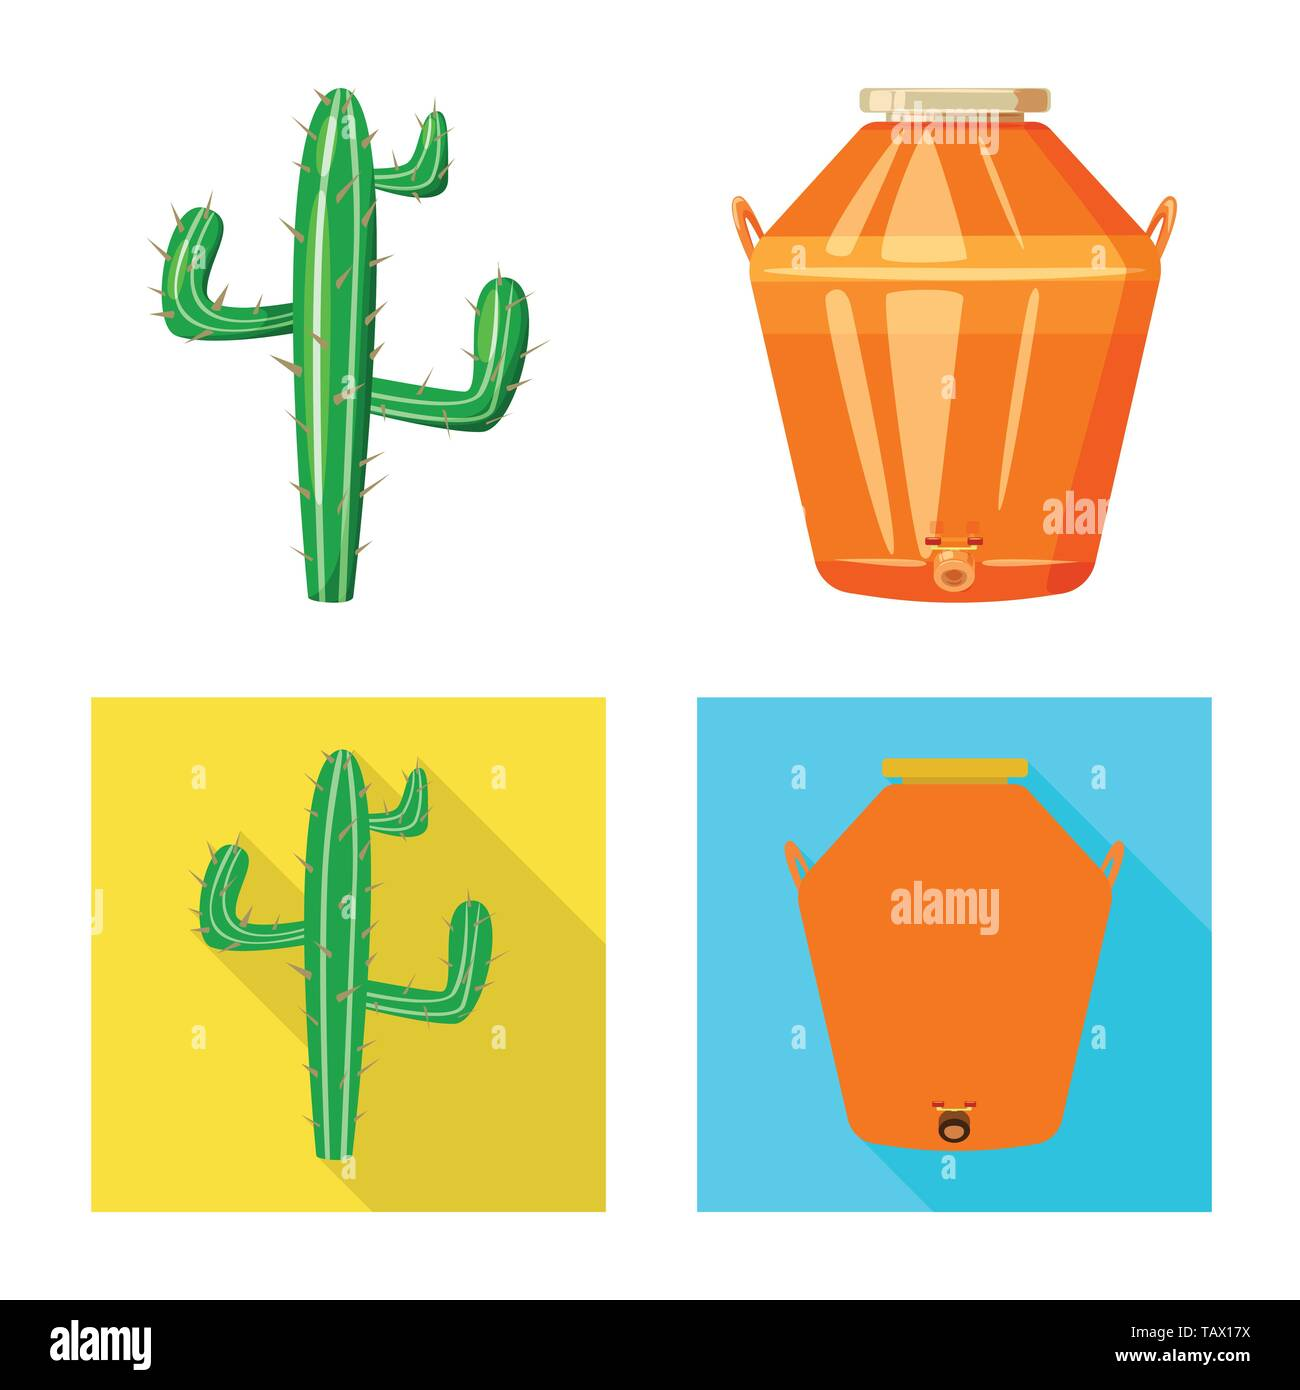 Vector illustration of cafe and Latin sign. Set of cafe and national stock vector illustration. - Stock Image